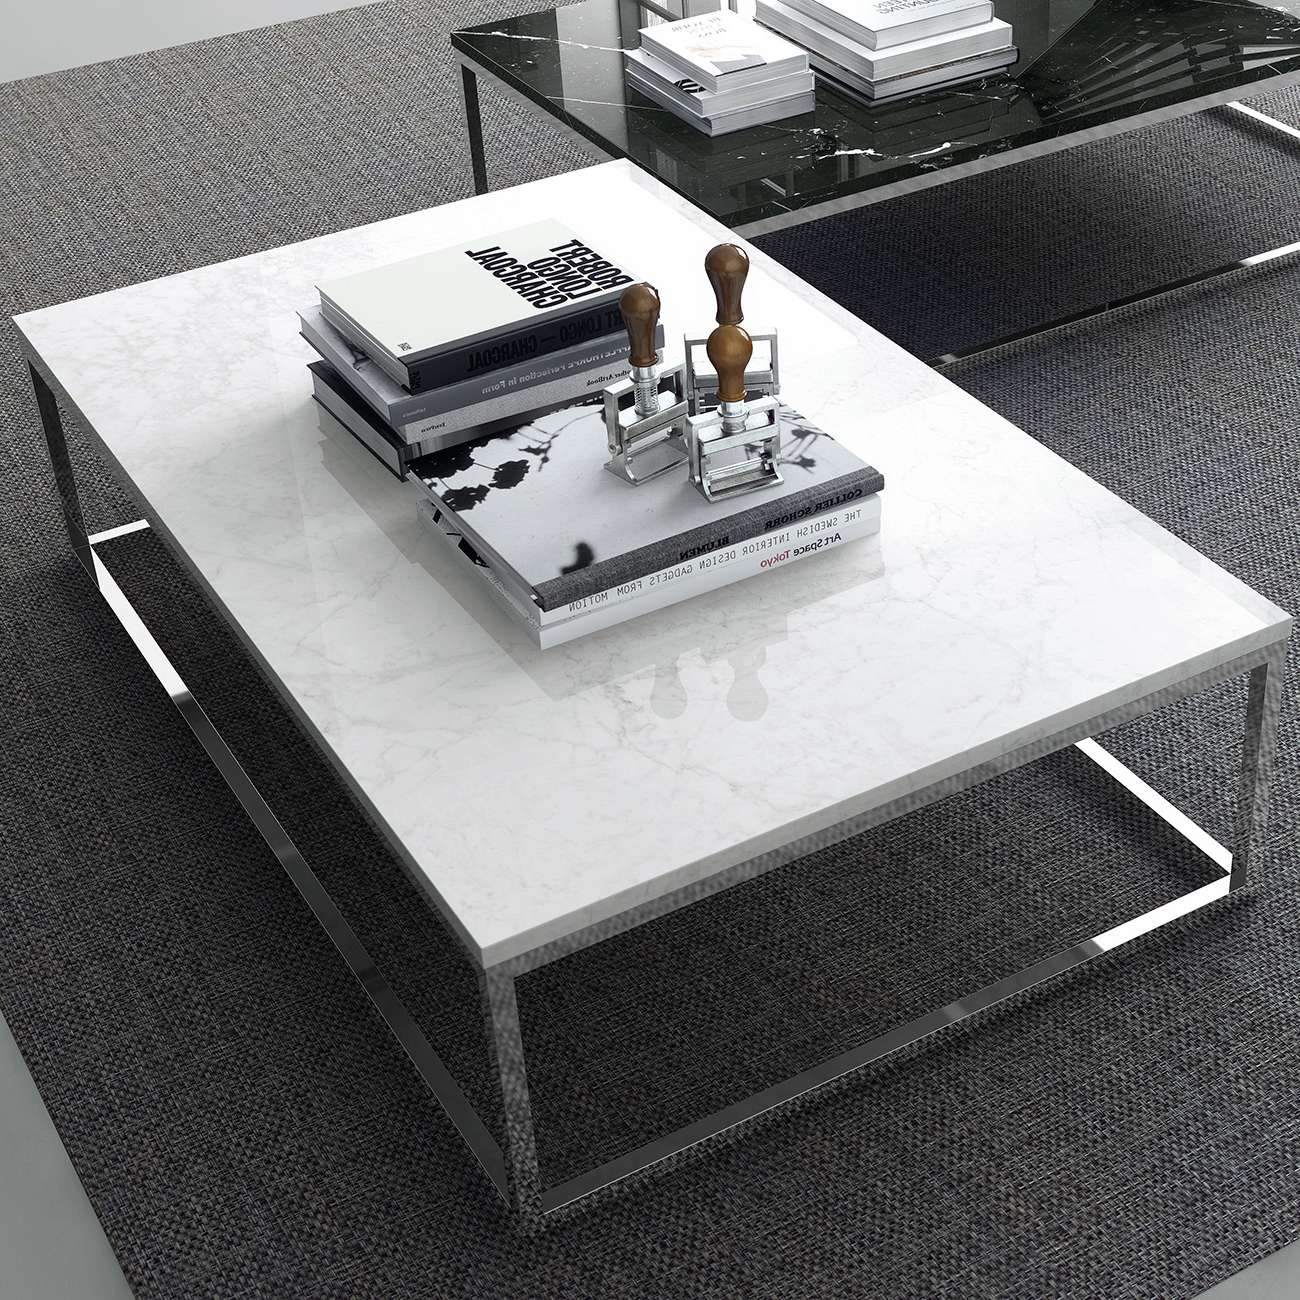 Chrome Legs, Tema Home Throughout Well Liked White And Chrome Coffee Tables (View 2 of 20)